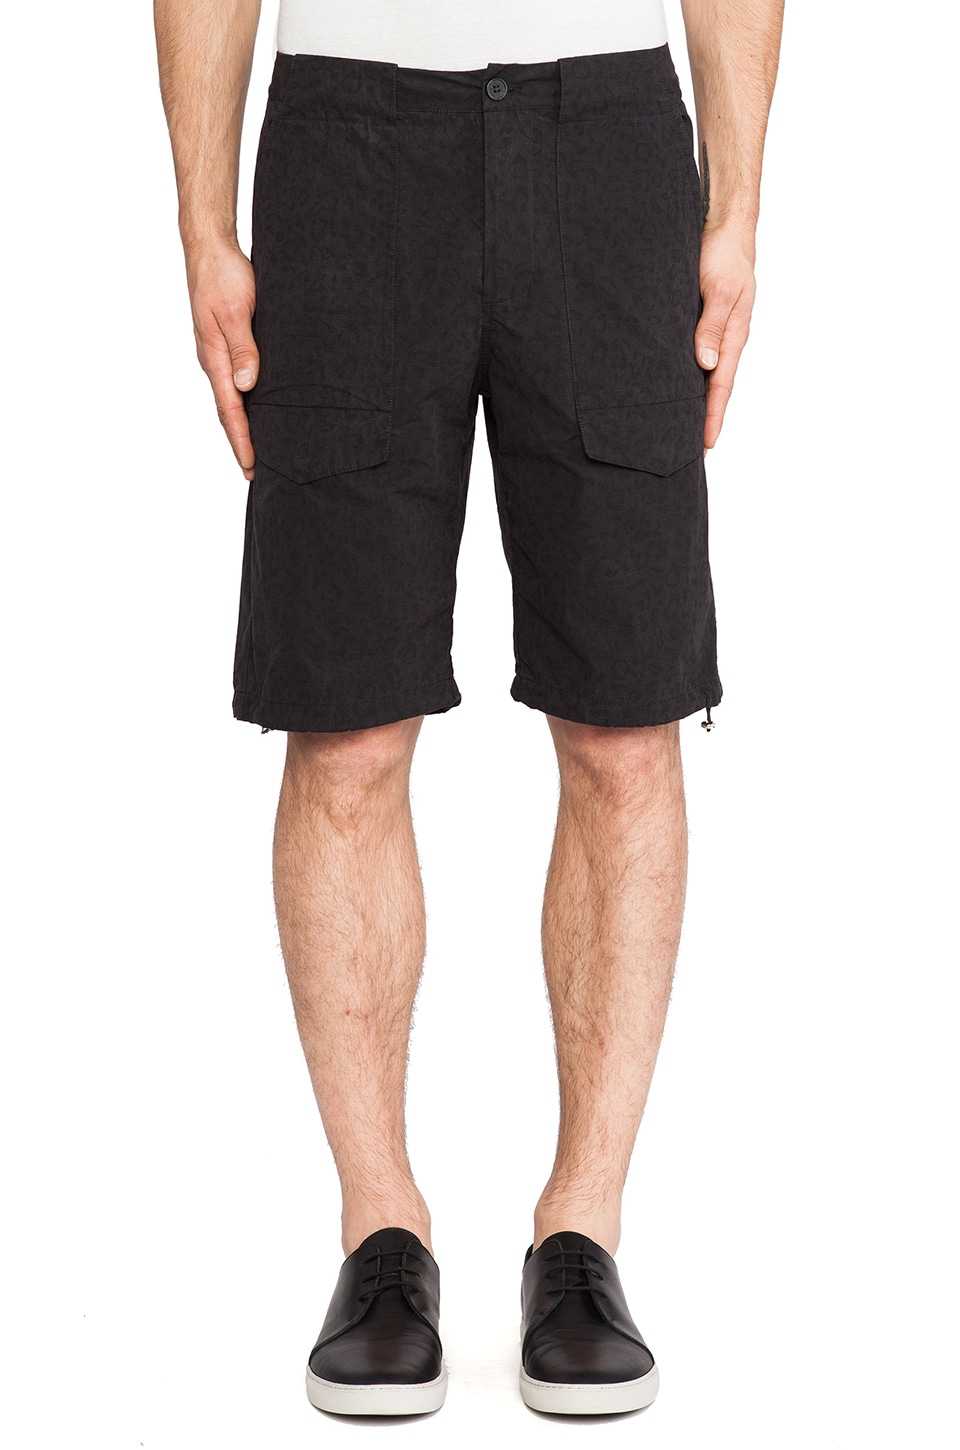 Shades of Grey by Micah Cohen Drawcord Field Short in Black Cheetah